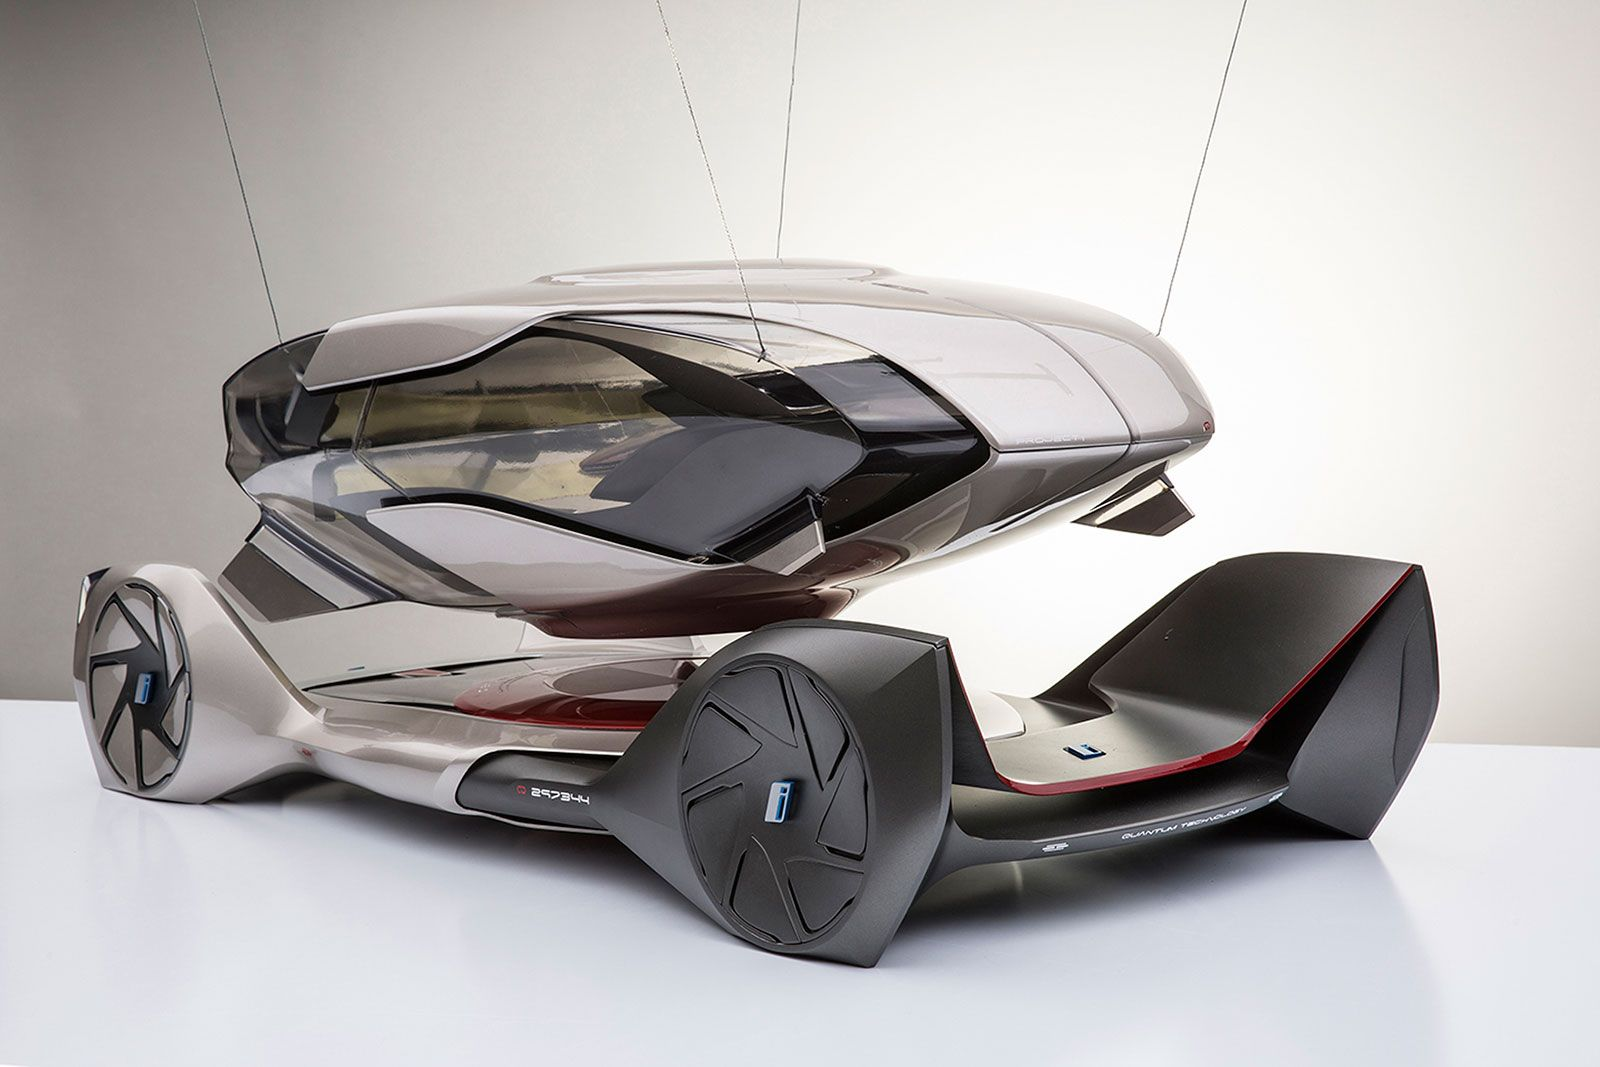 Bmw Iq Concept By Chris Lee Scale Model Car Body Design Concept Cars Car Design Bmw Concept Car